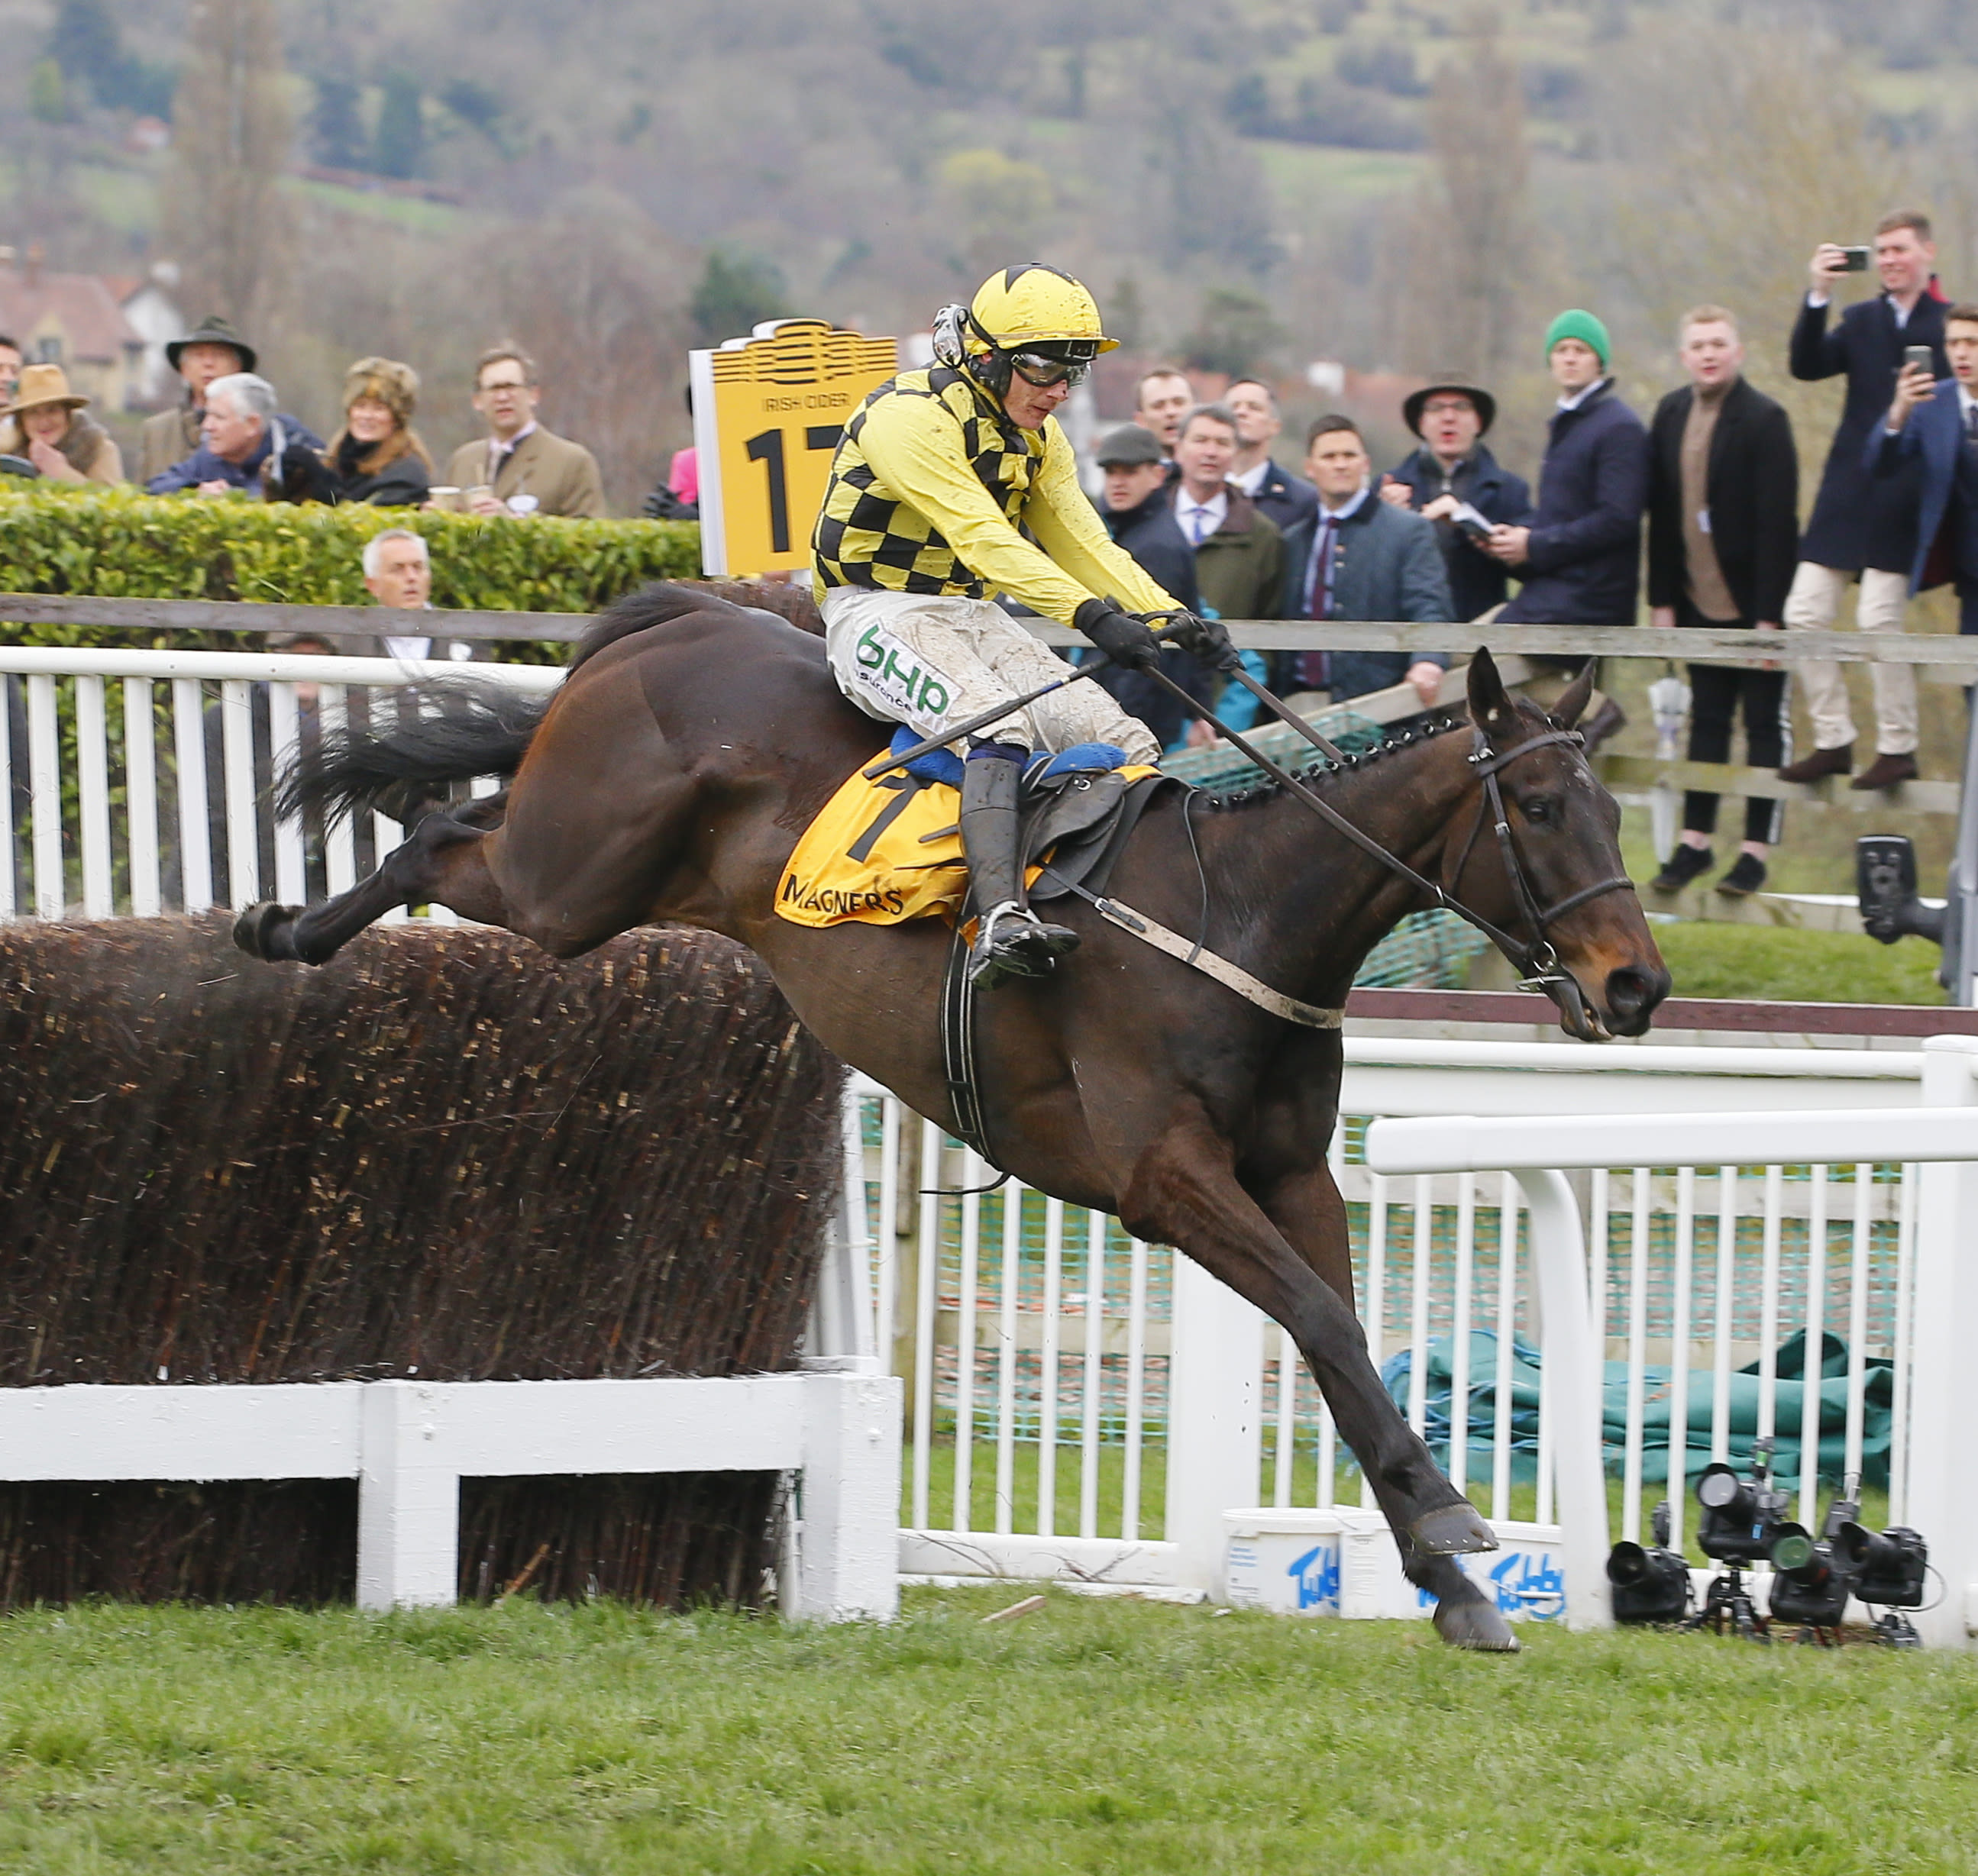 Al Boum Photo and Paul Townend have won the last two renewals of the Cheltenham Gold Cup